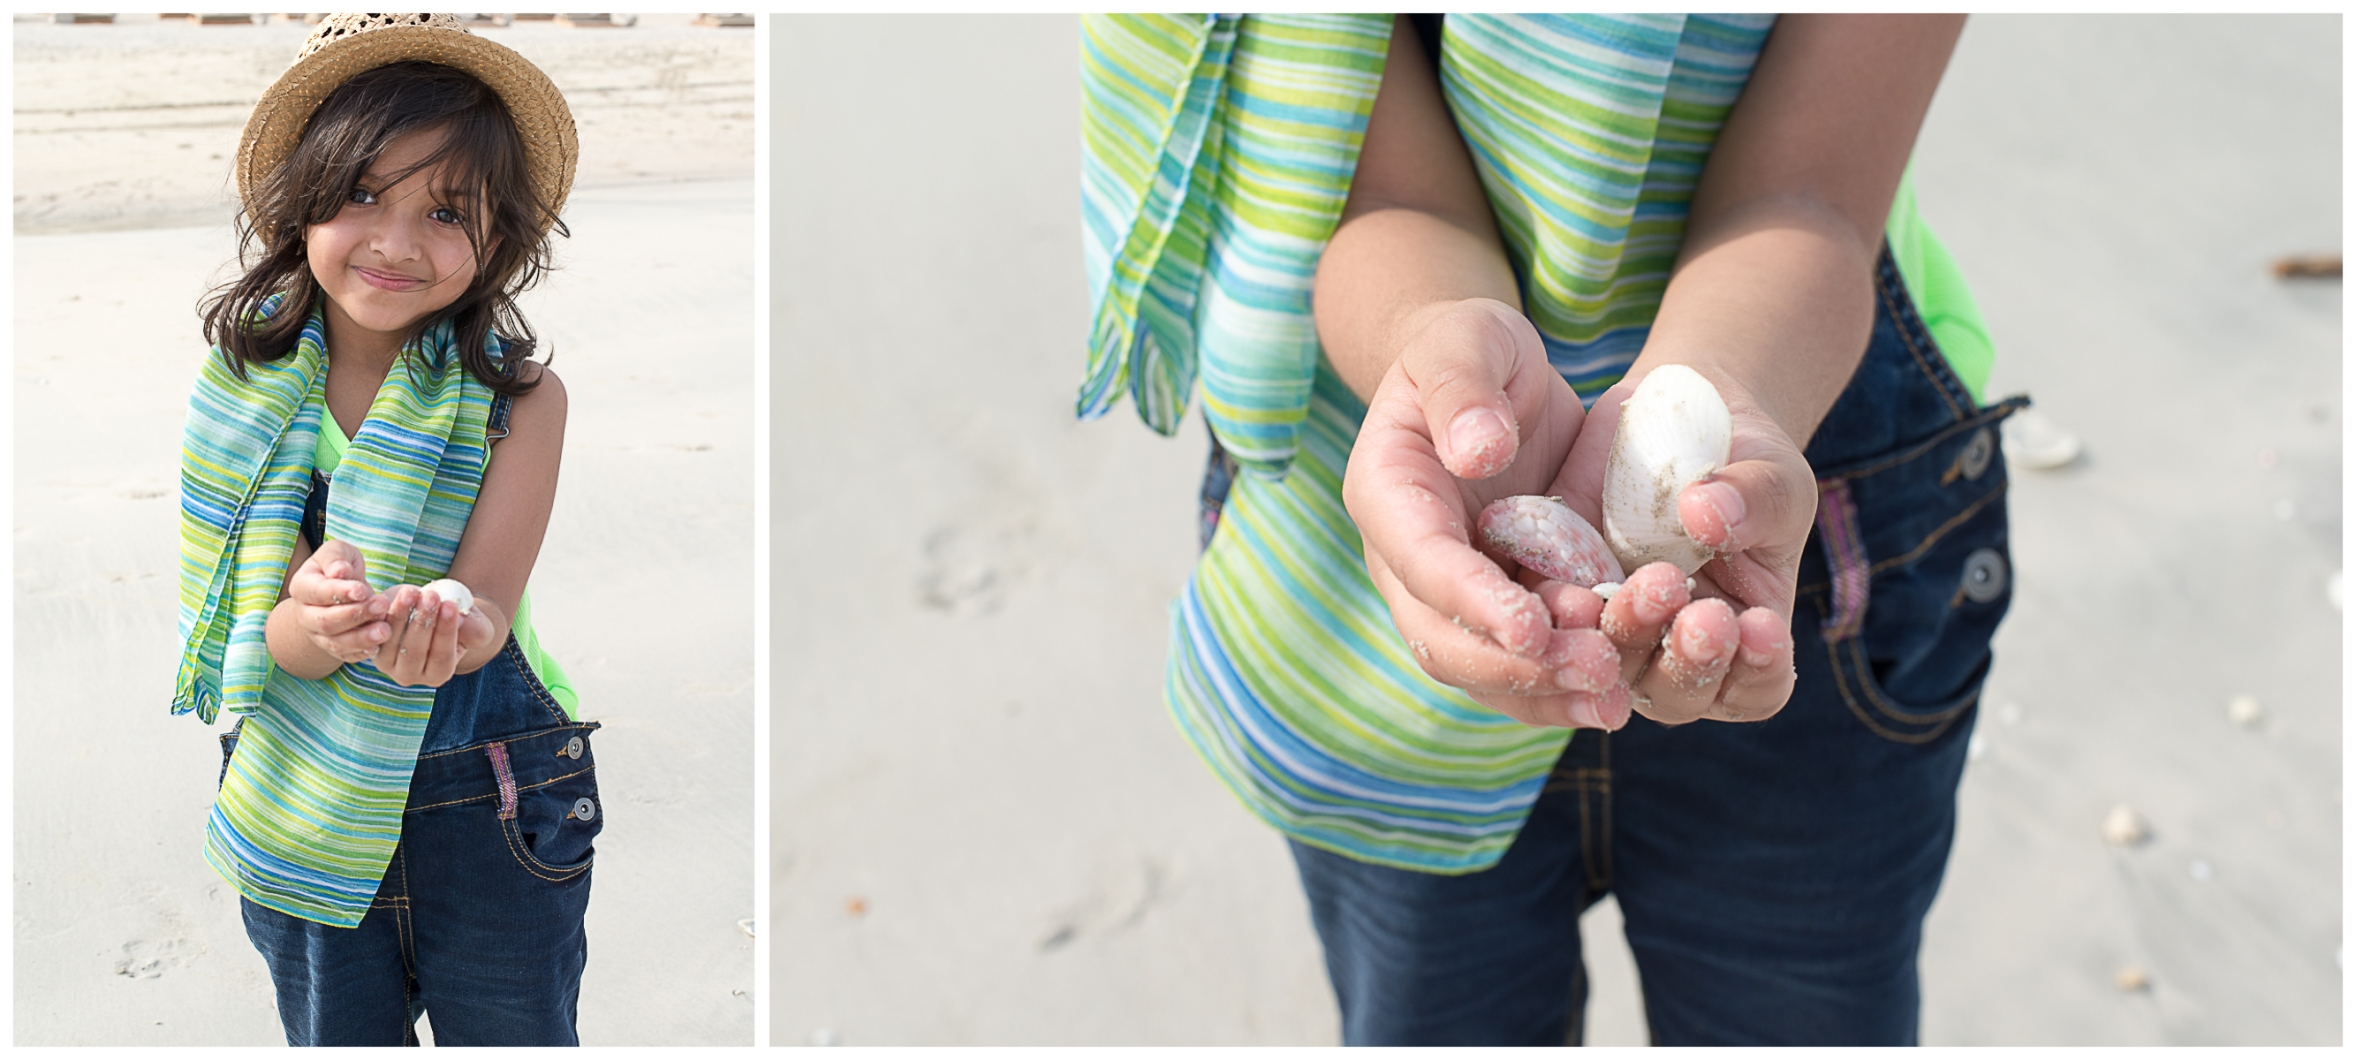 Collecting shells on JBR beach